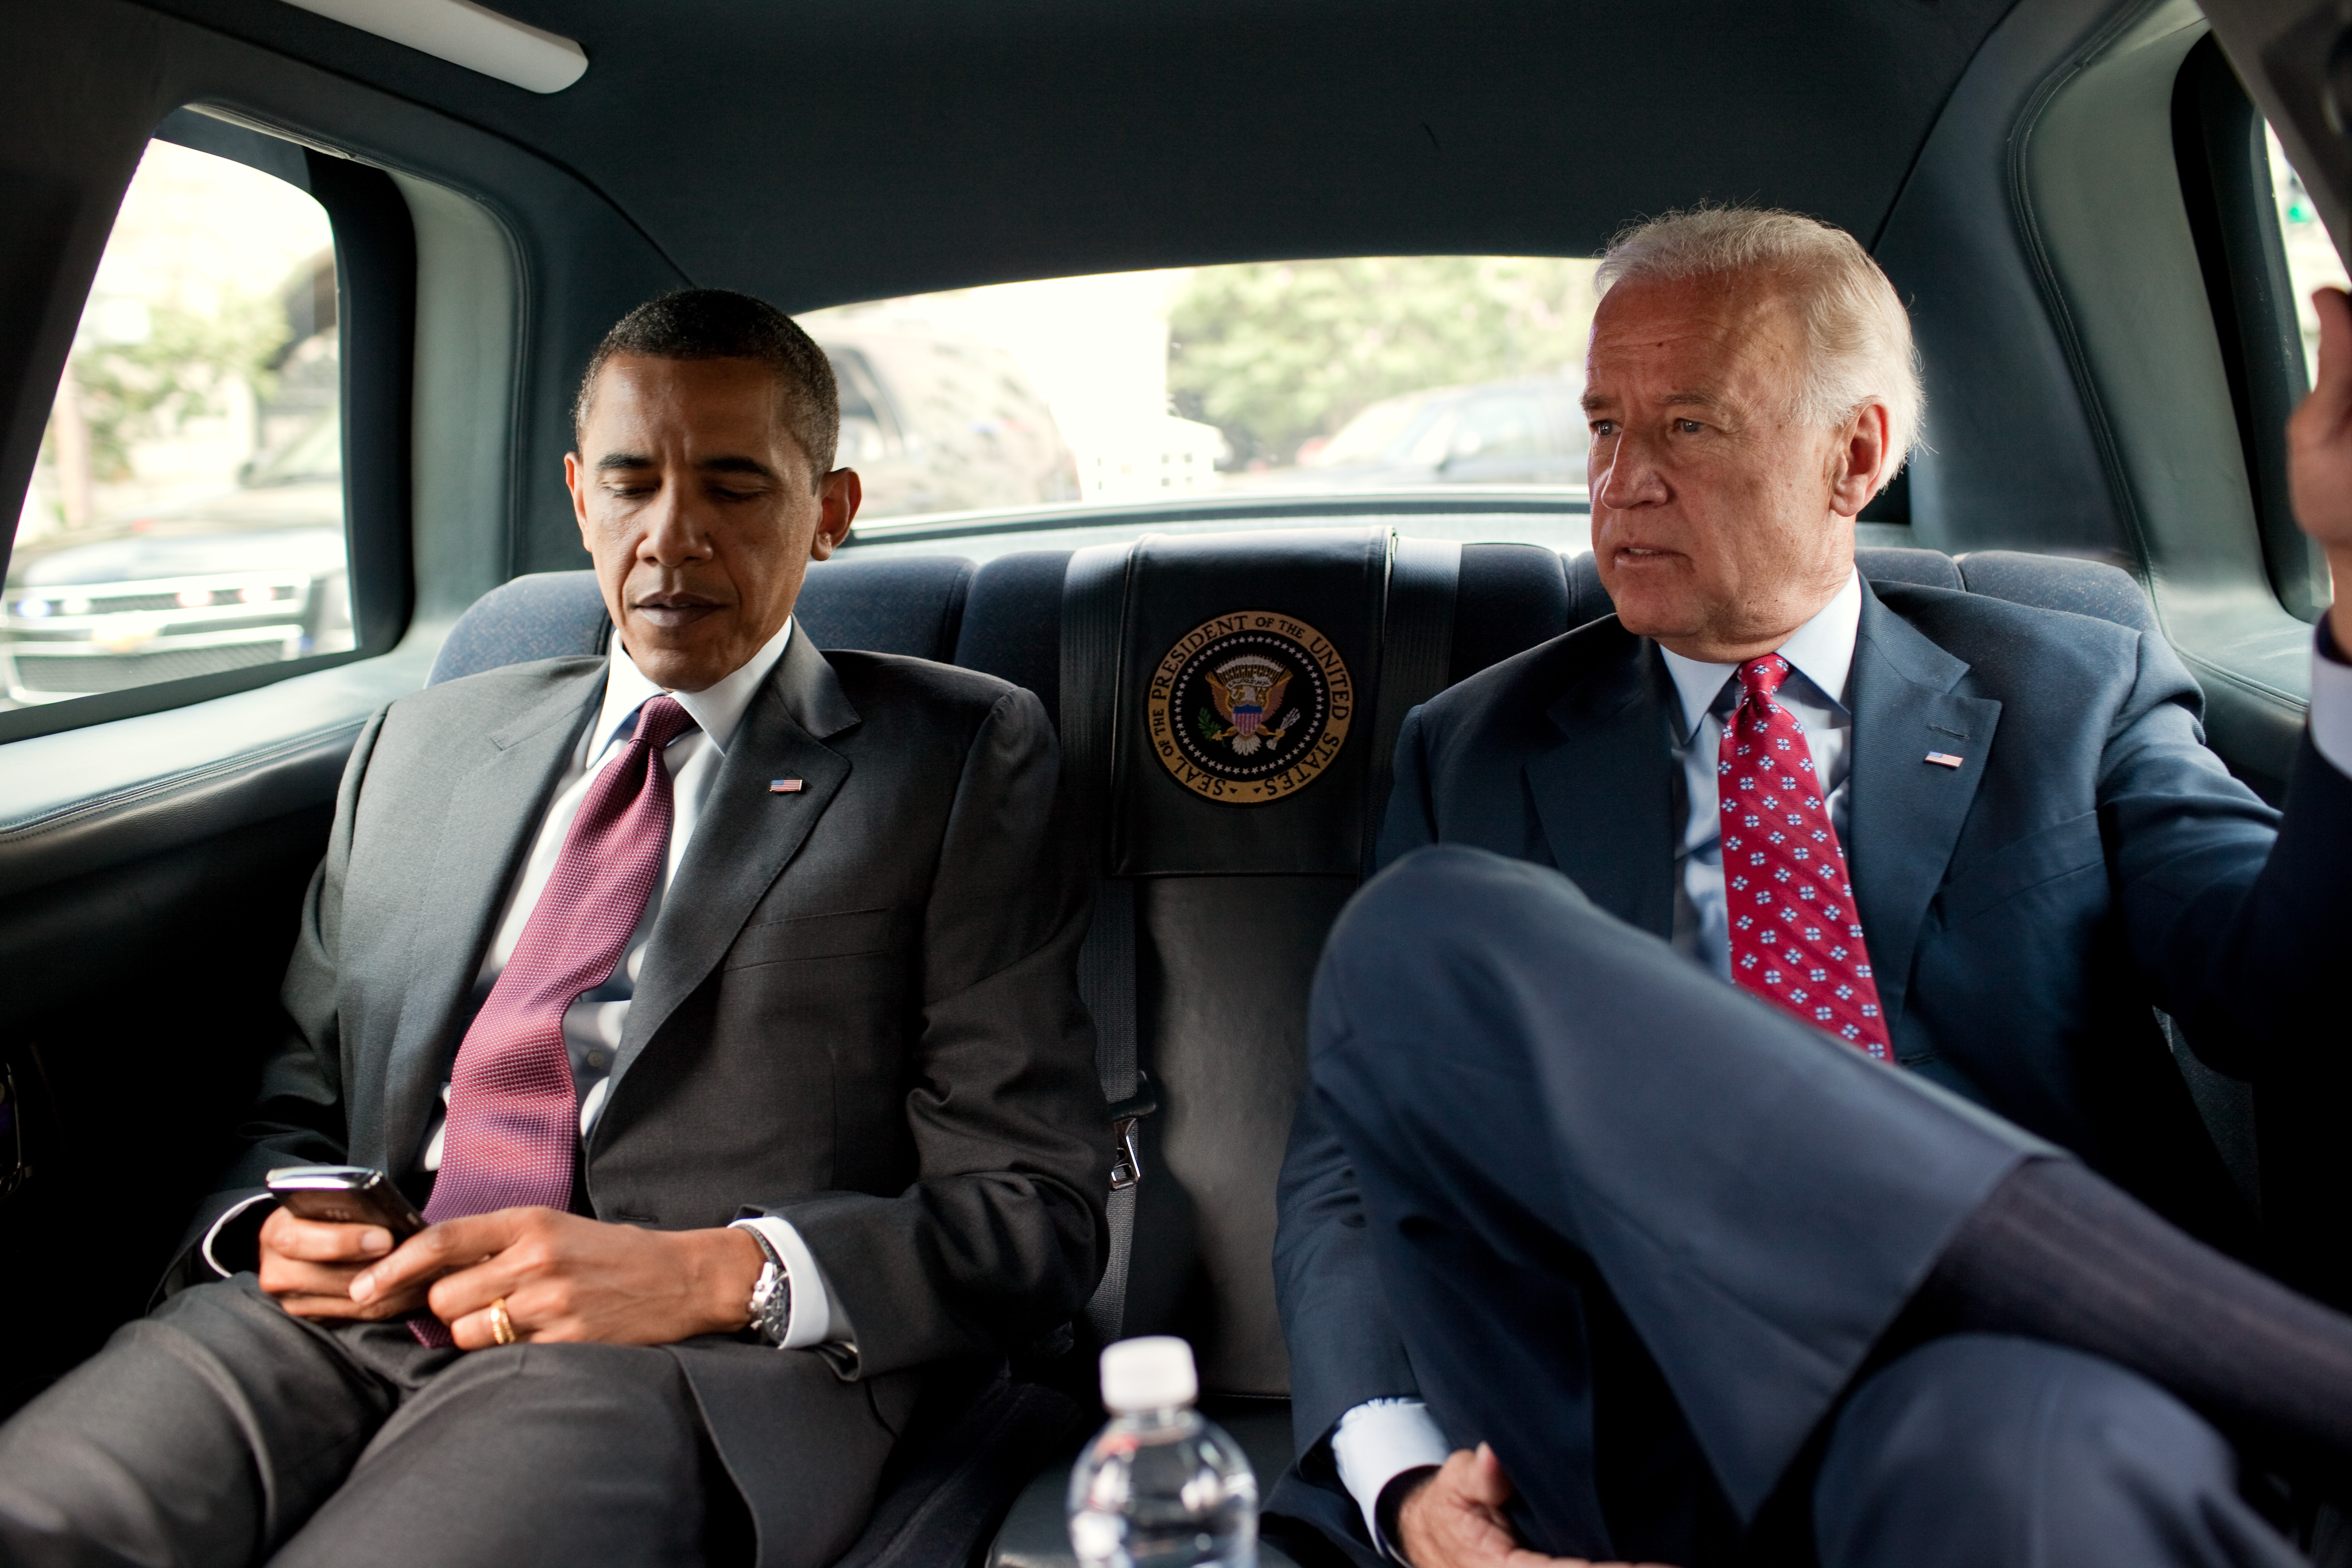 Obama and Biden in 2010. White House Photo by Pete Souza.